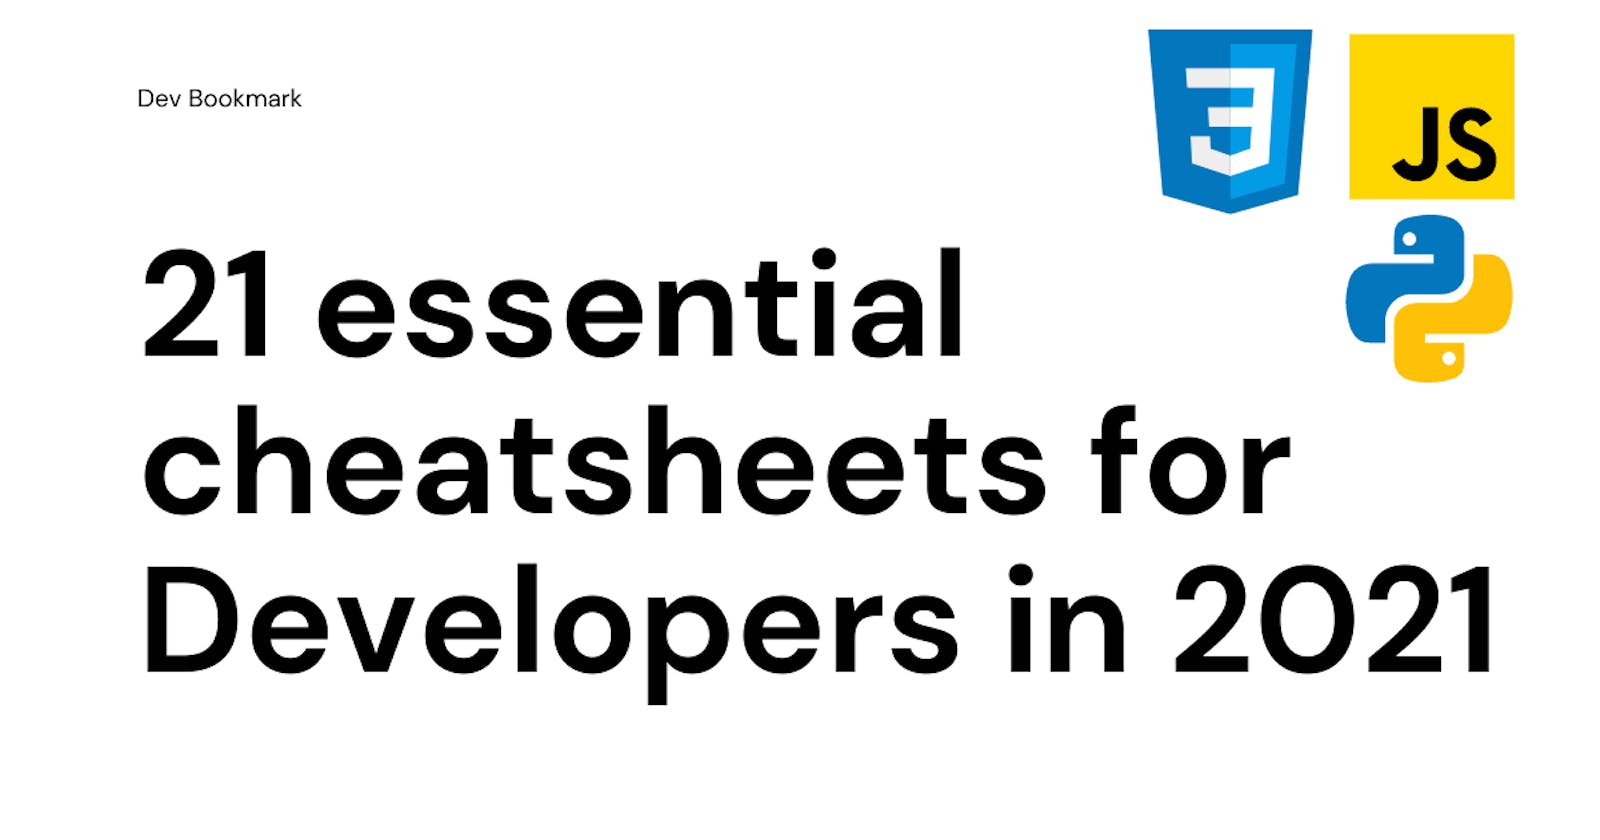 21 essential cheatsheets for Developers in 2021